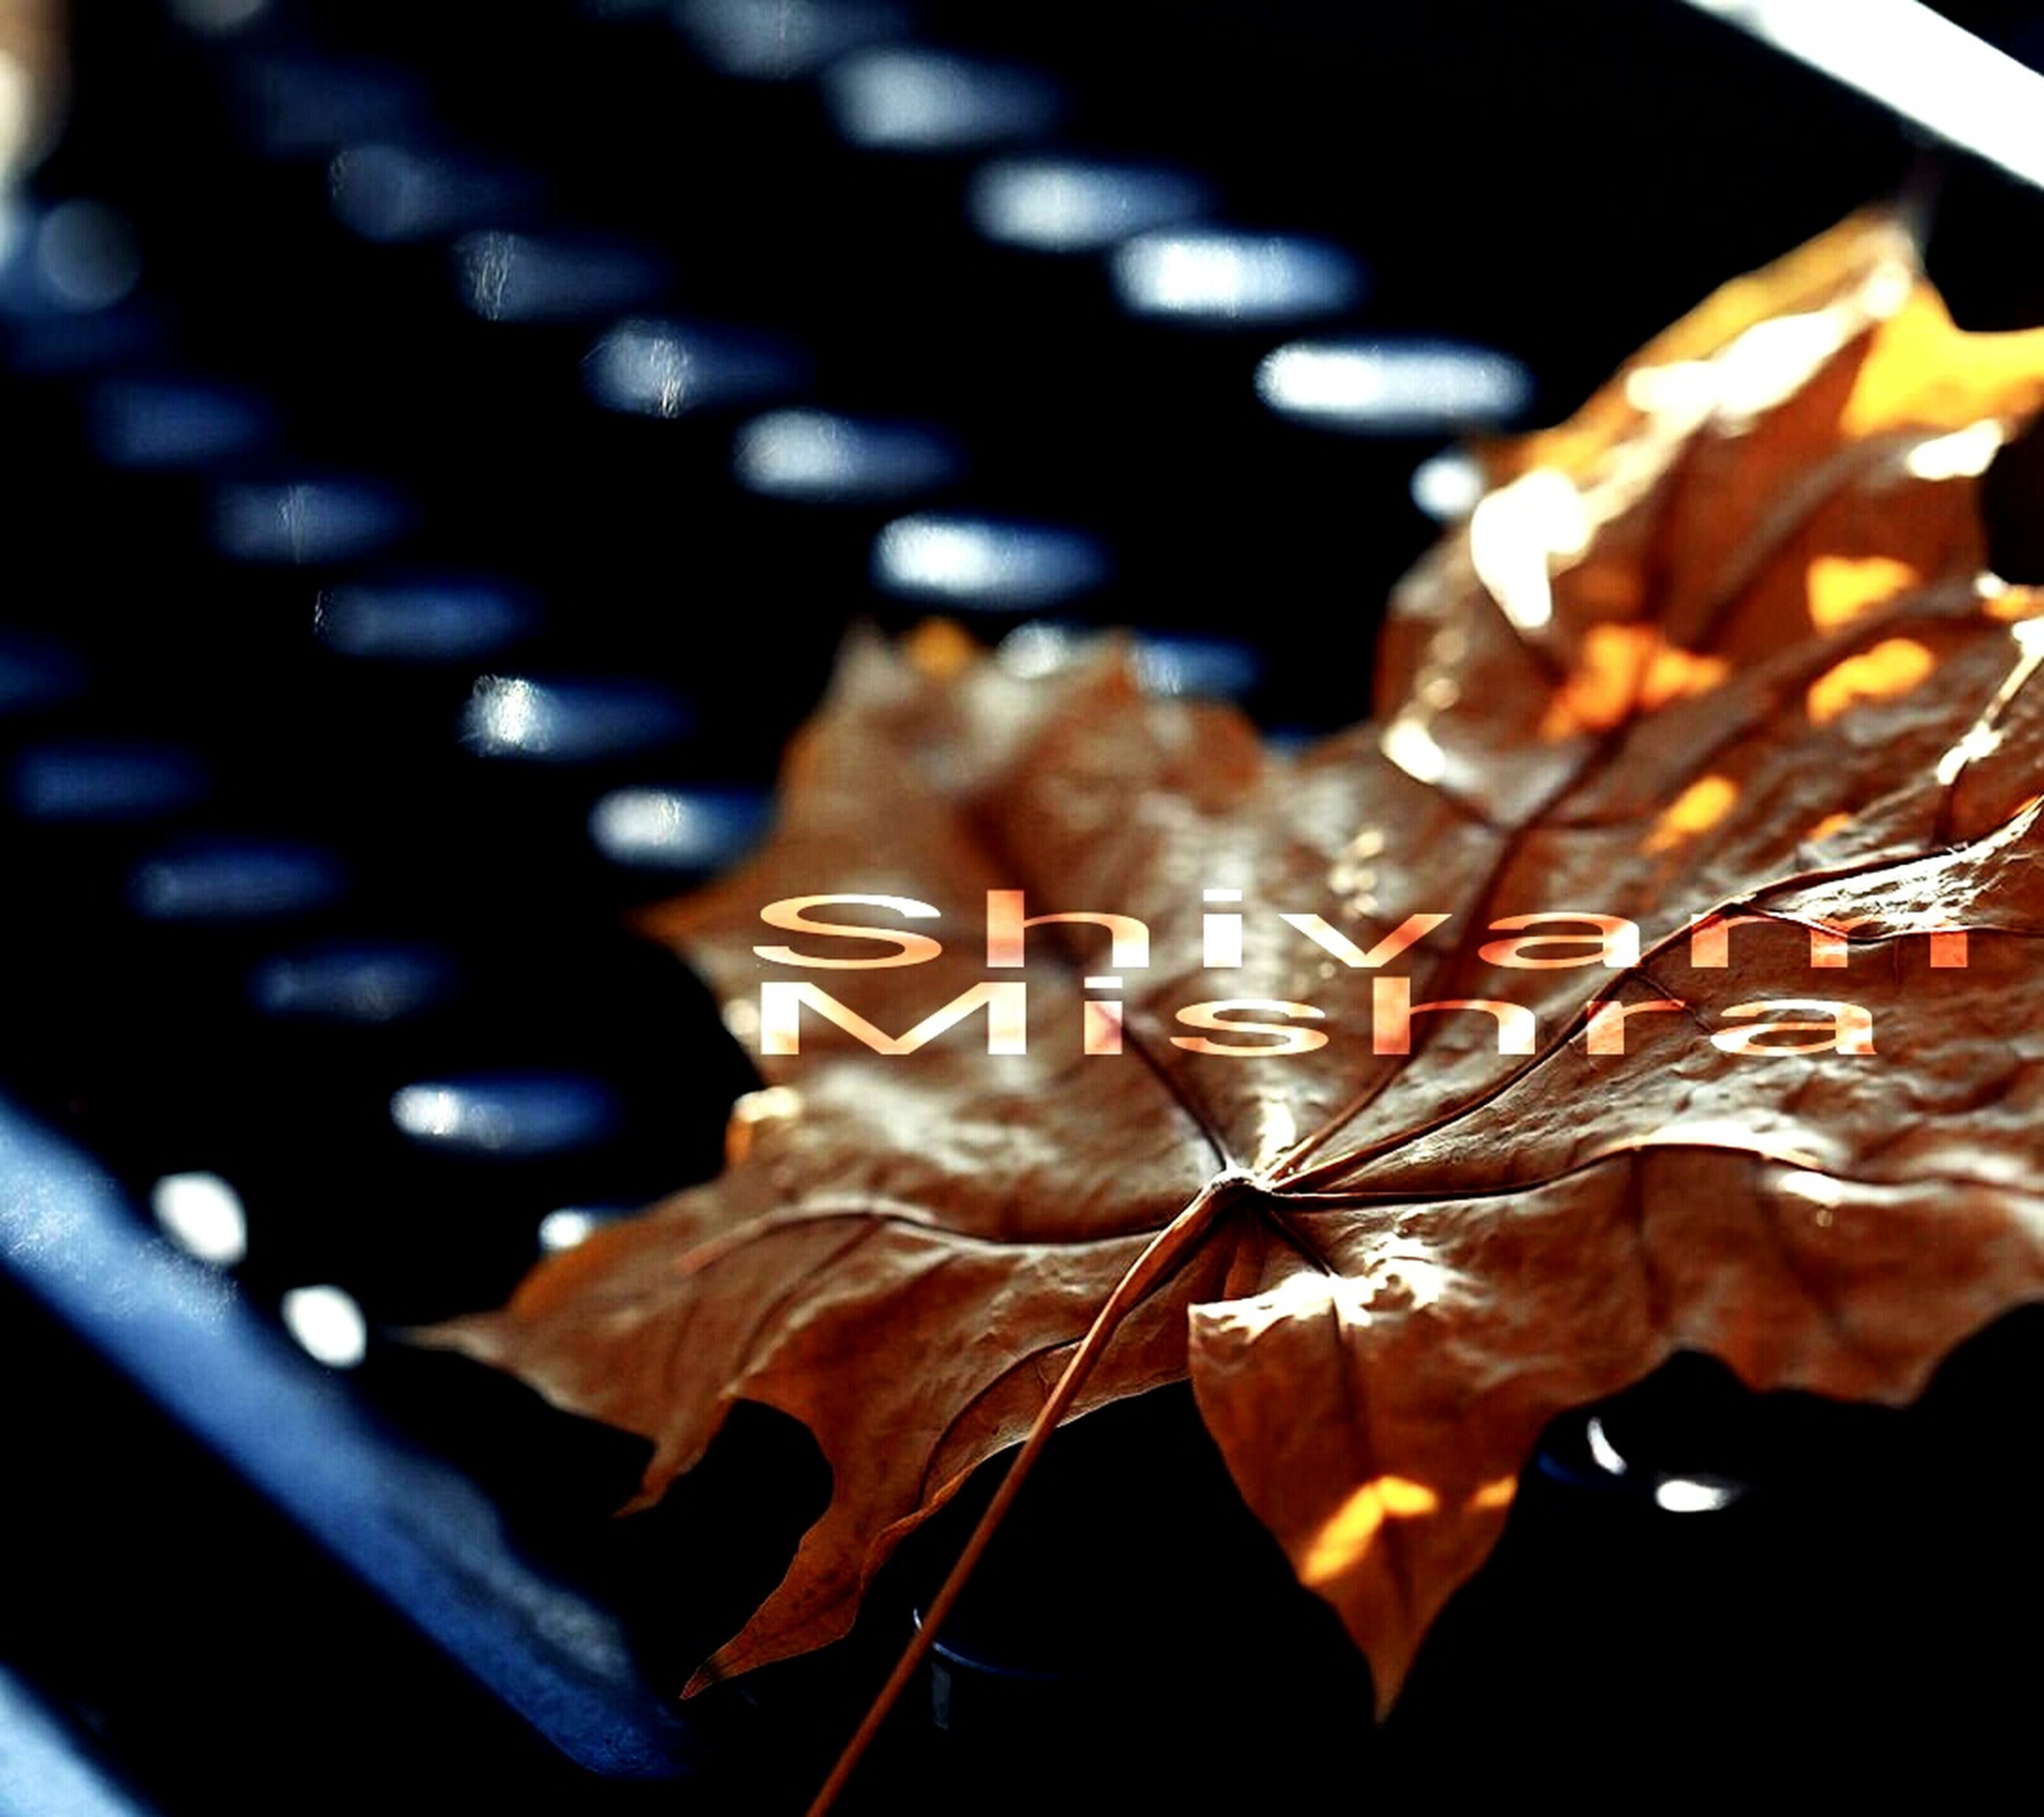 close-up, focus on foreground, selective focus, leaf, indoors, still life, large group of objects, abundance, dry, no people, metal, leaves, autumn, in a row, day, freshness, paper, detail, variation